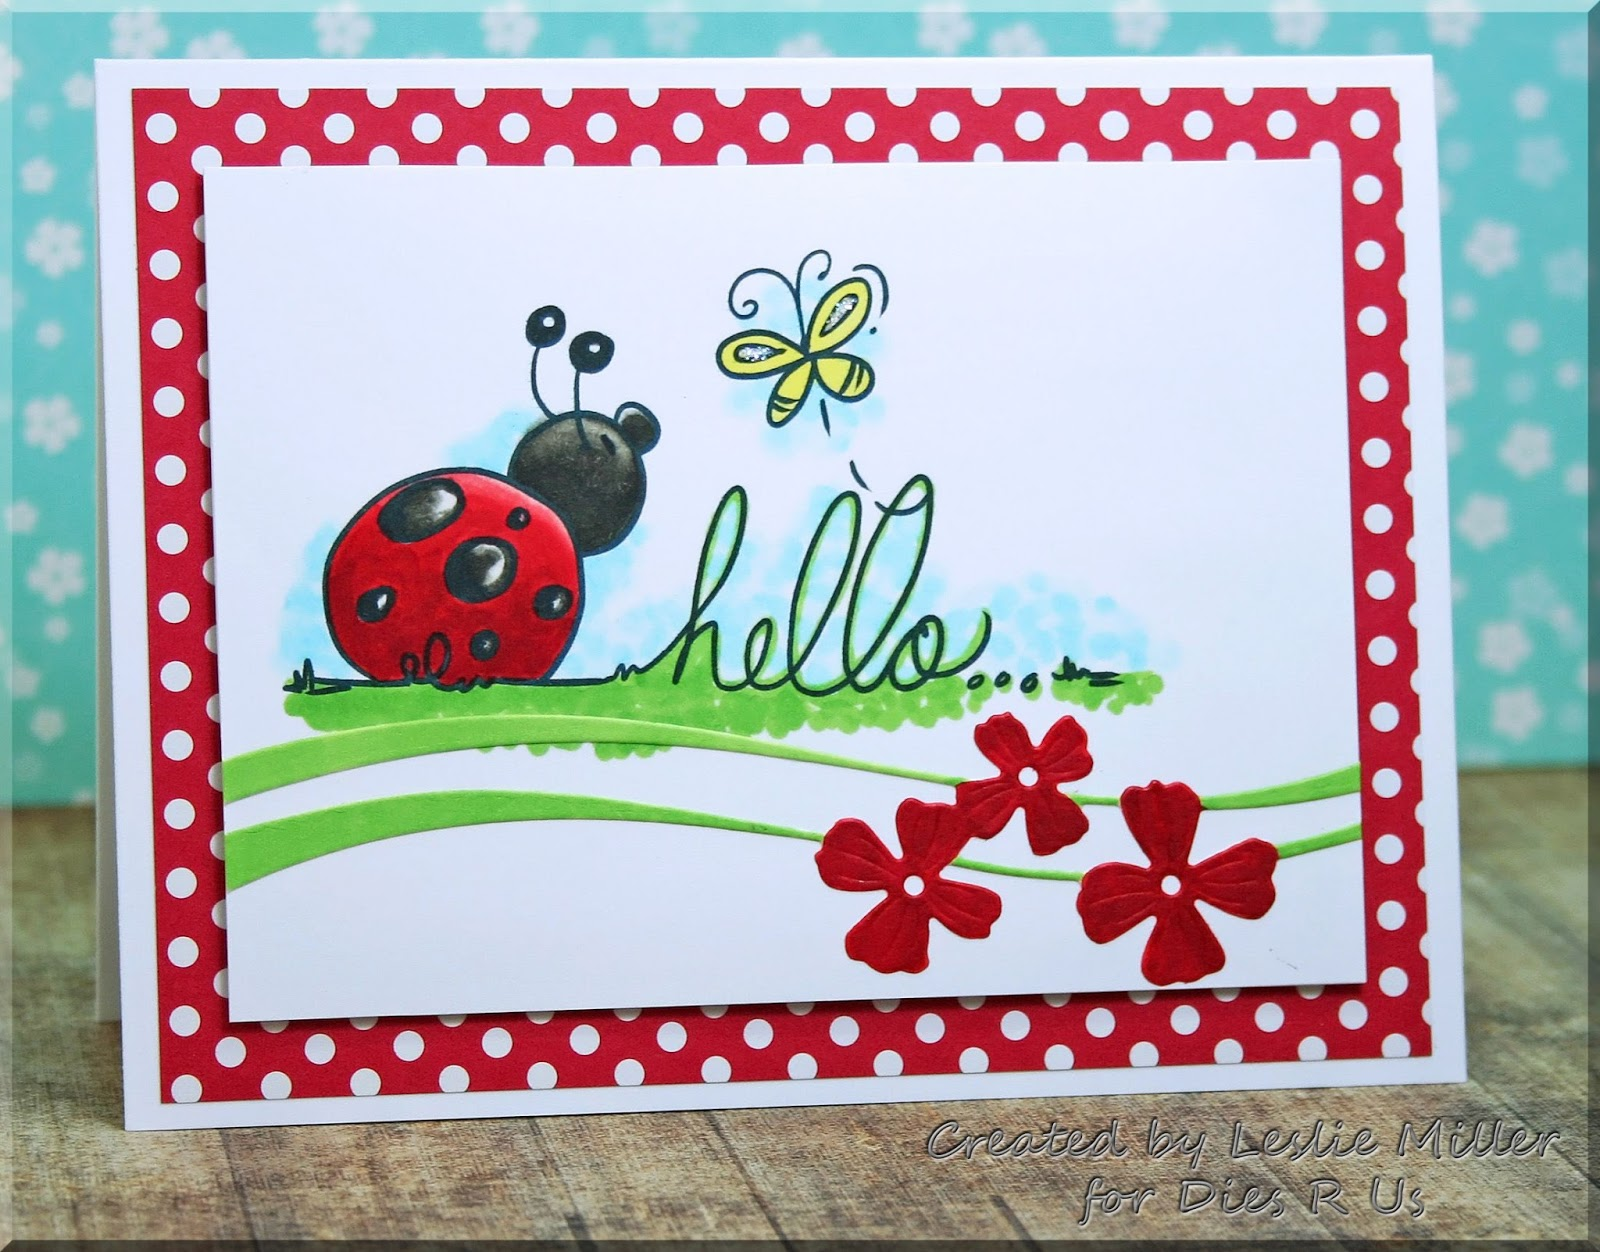 Ive Used Ladybug Hello Digital Stamp From Bugaboo With A Die Cut Poppystamps Petal Ribbon This Is Such Pretty Swoosh Of Floral Fun Which Can Be